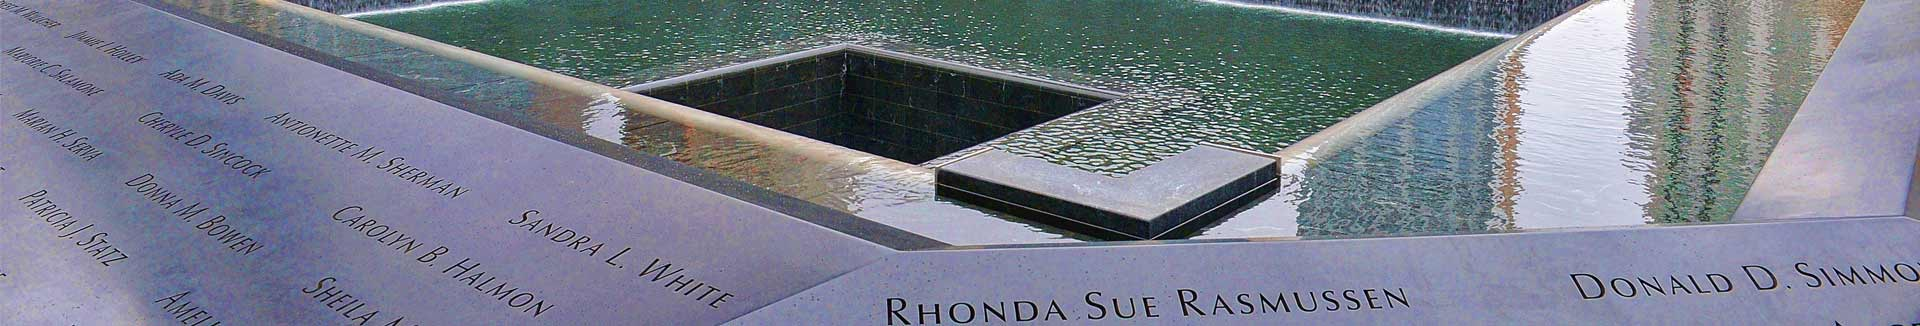 World Trade Center Memorial Fountains